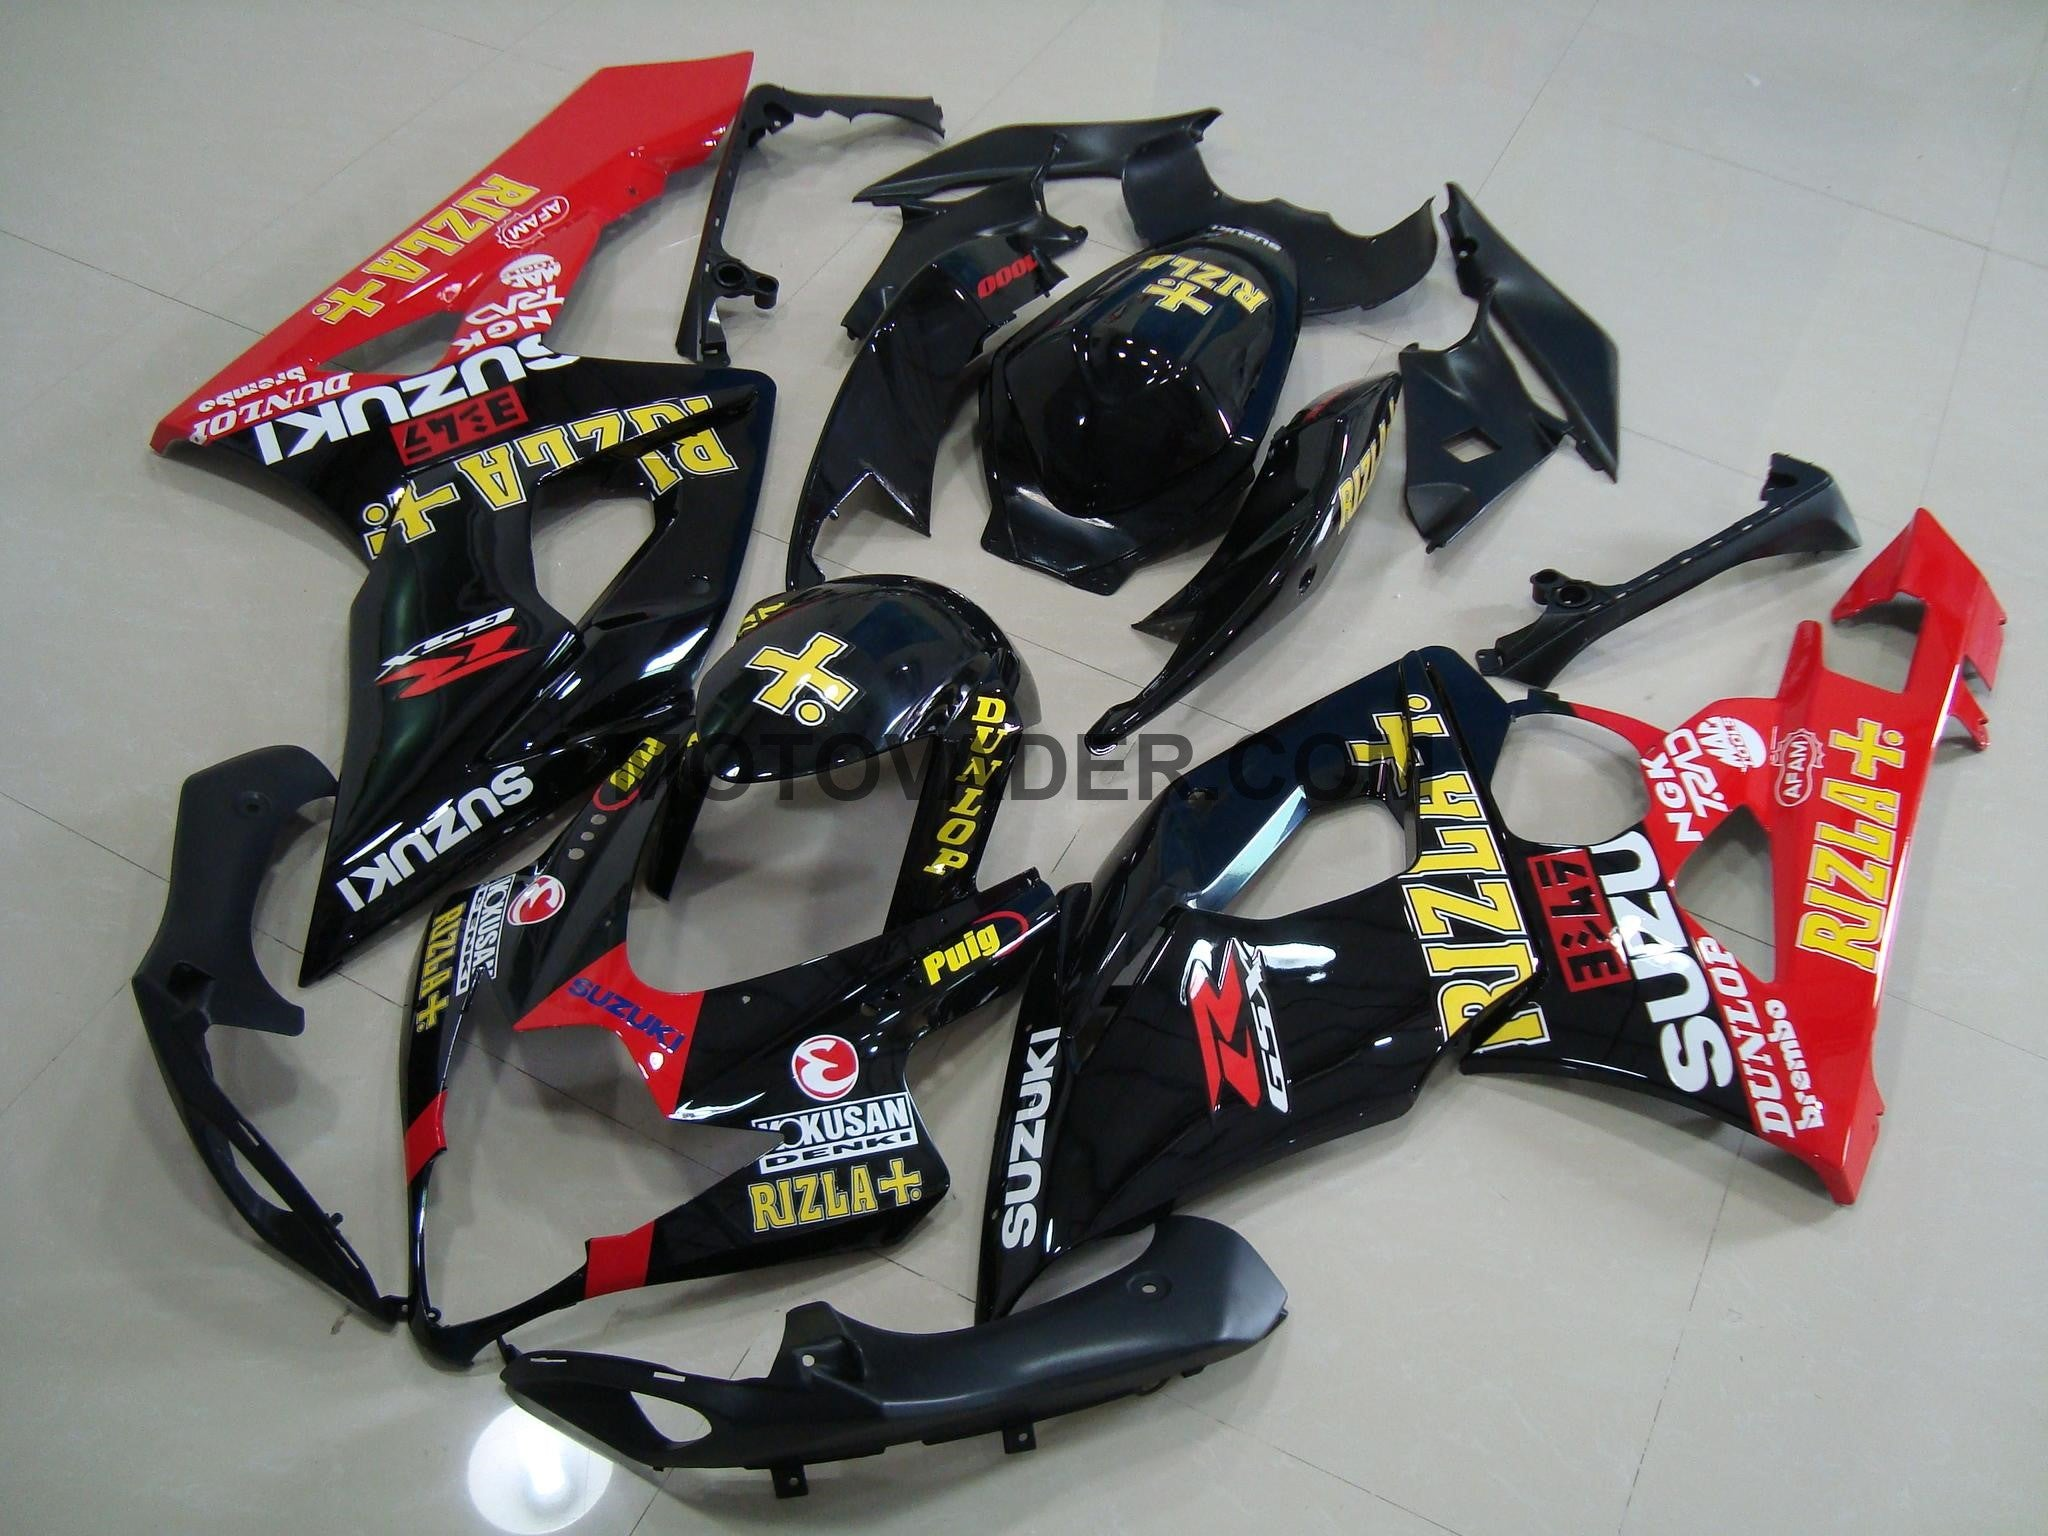 Suzuki GSXR 1000 2005-2006 Black & Red Rizla 4 Fairing